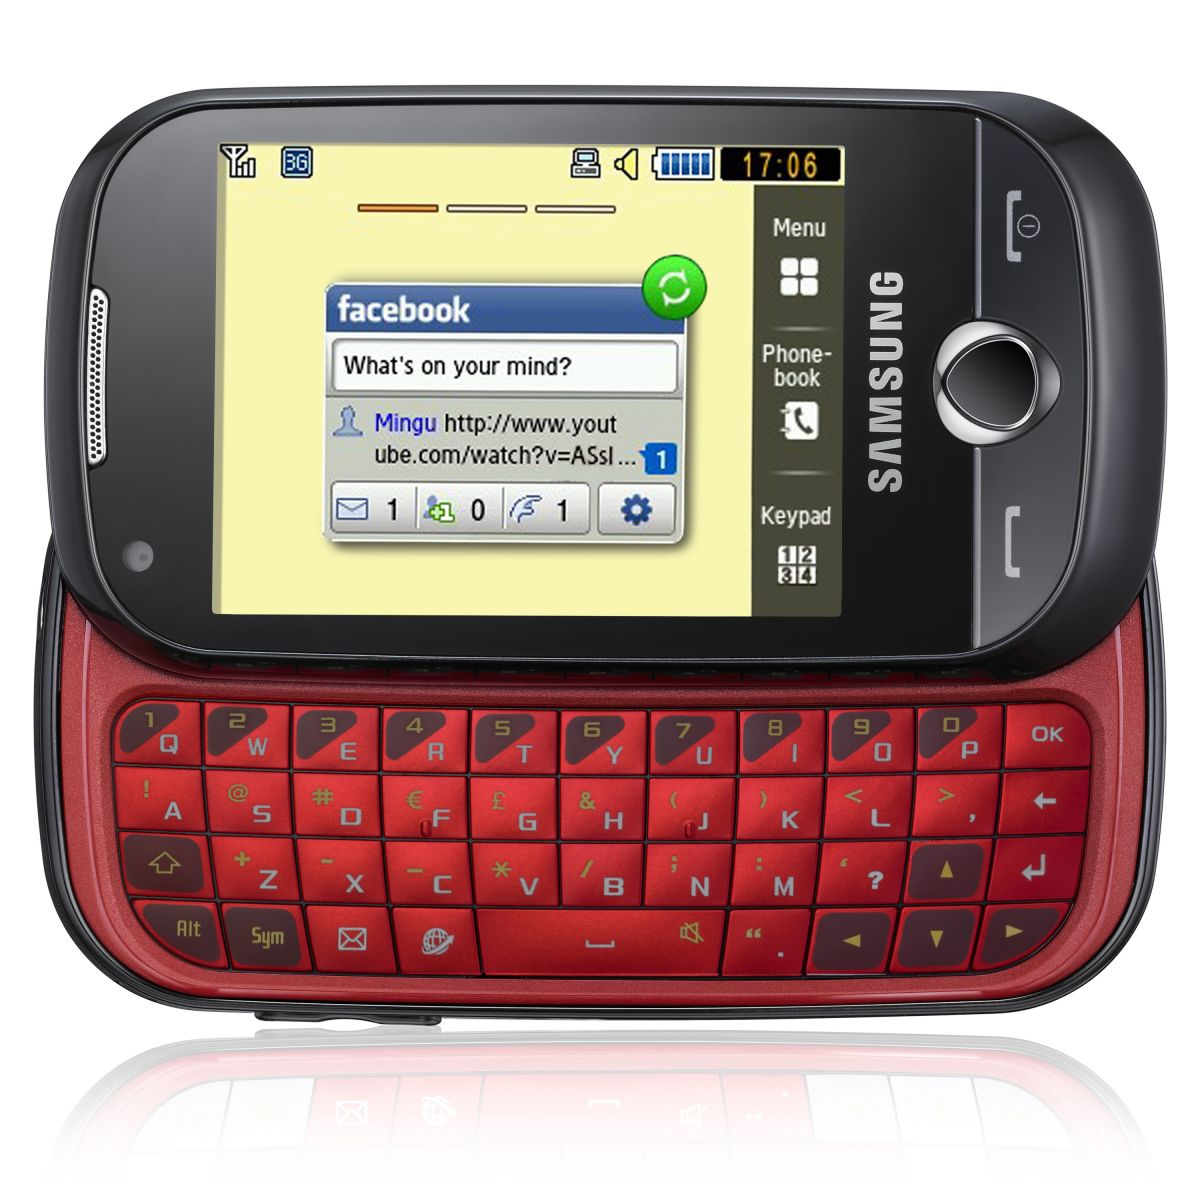 Mobile Phones Qwerty Keyboard And Touchscreen